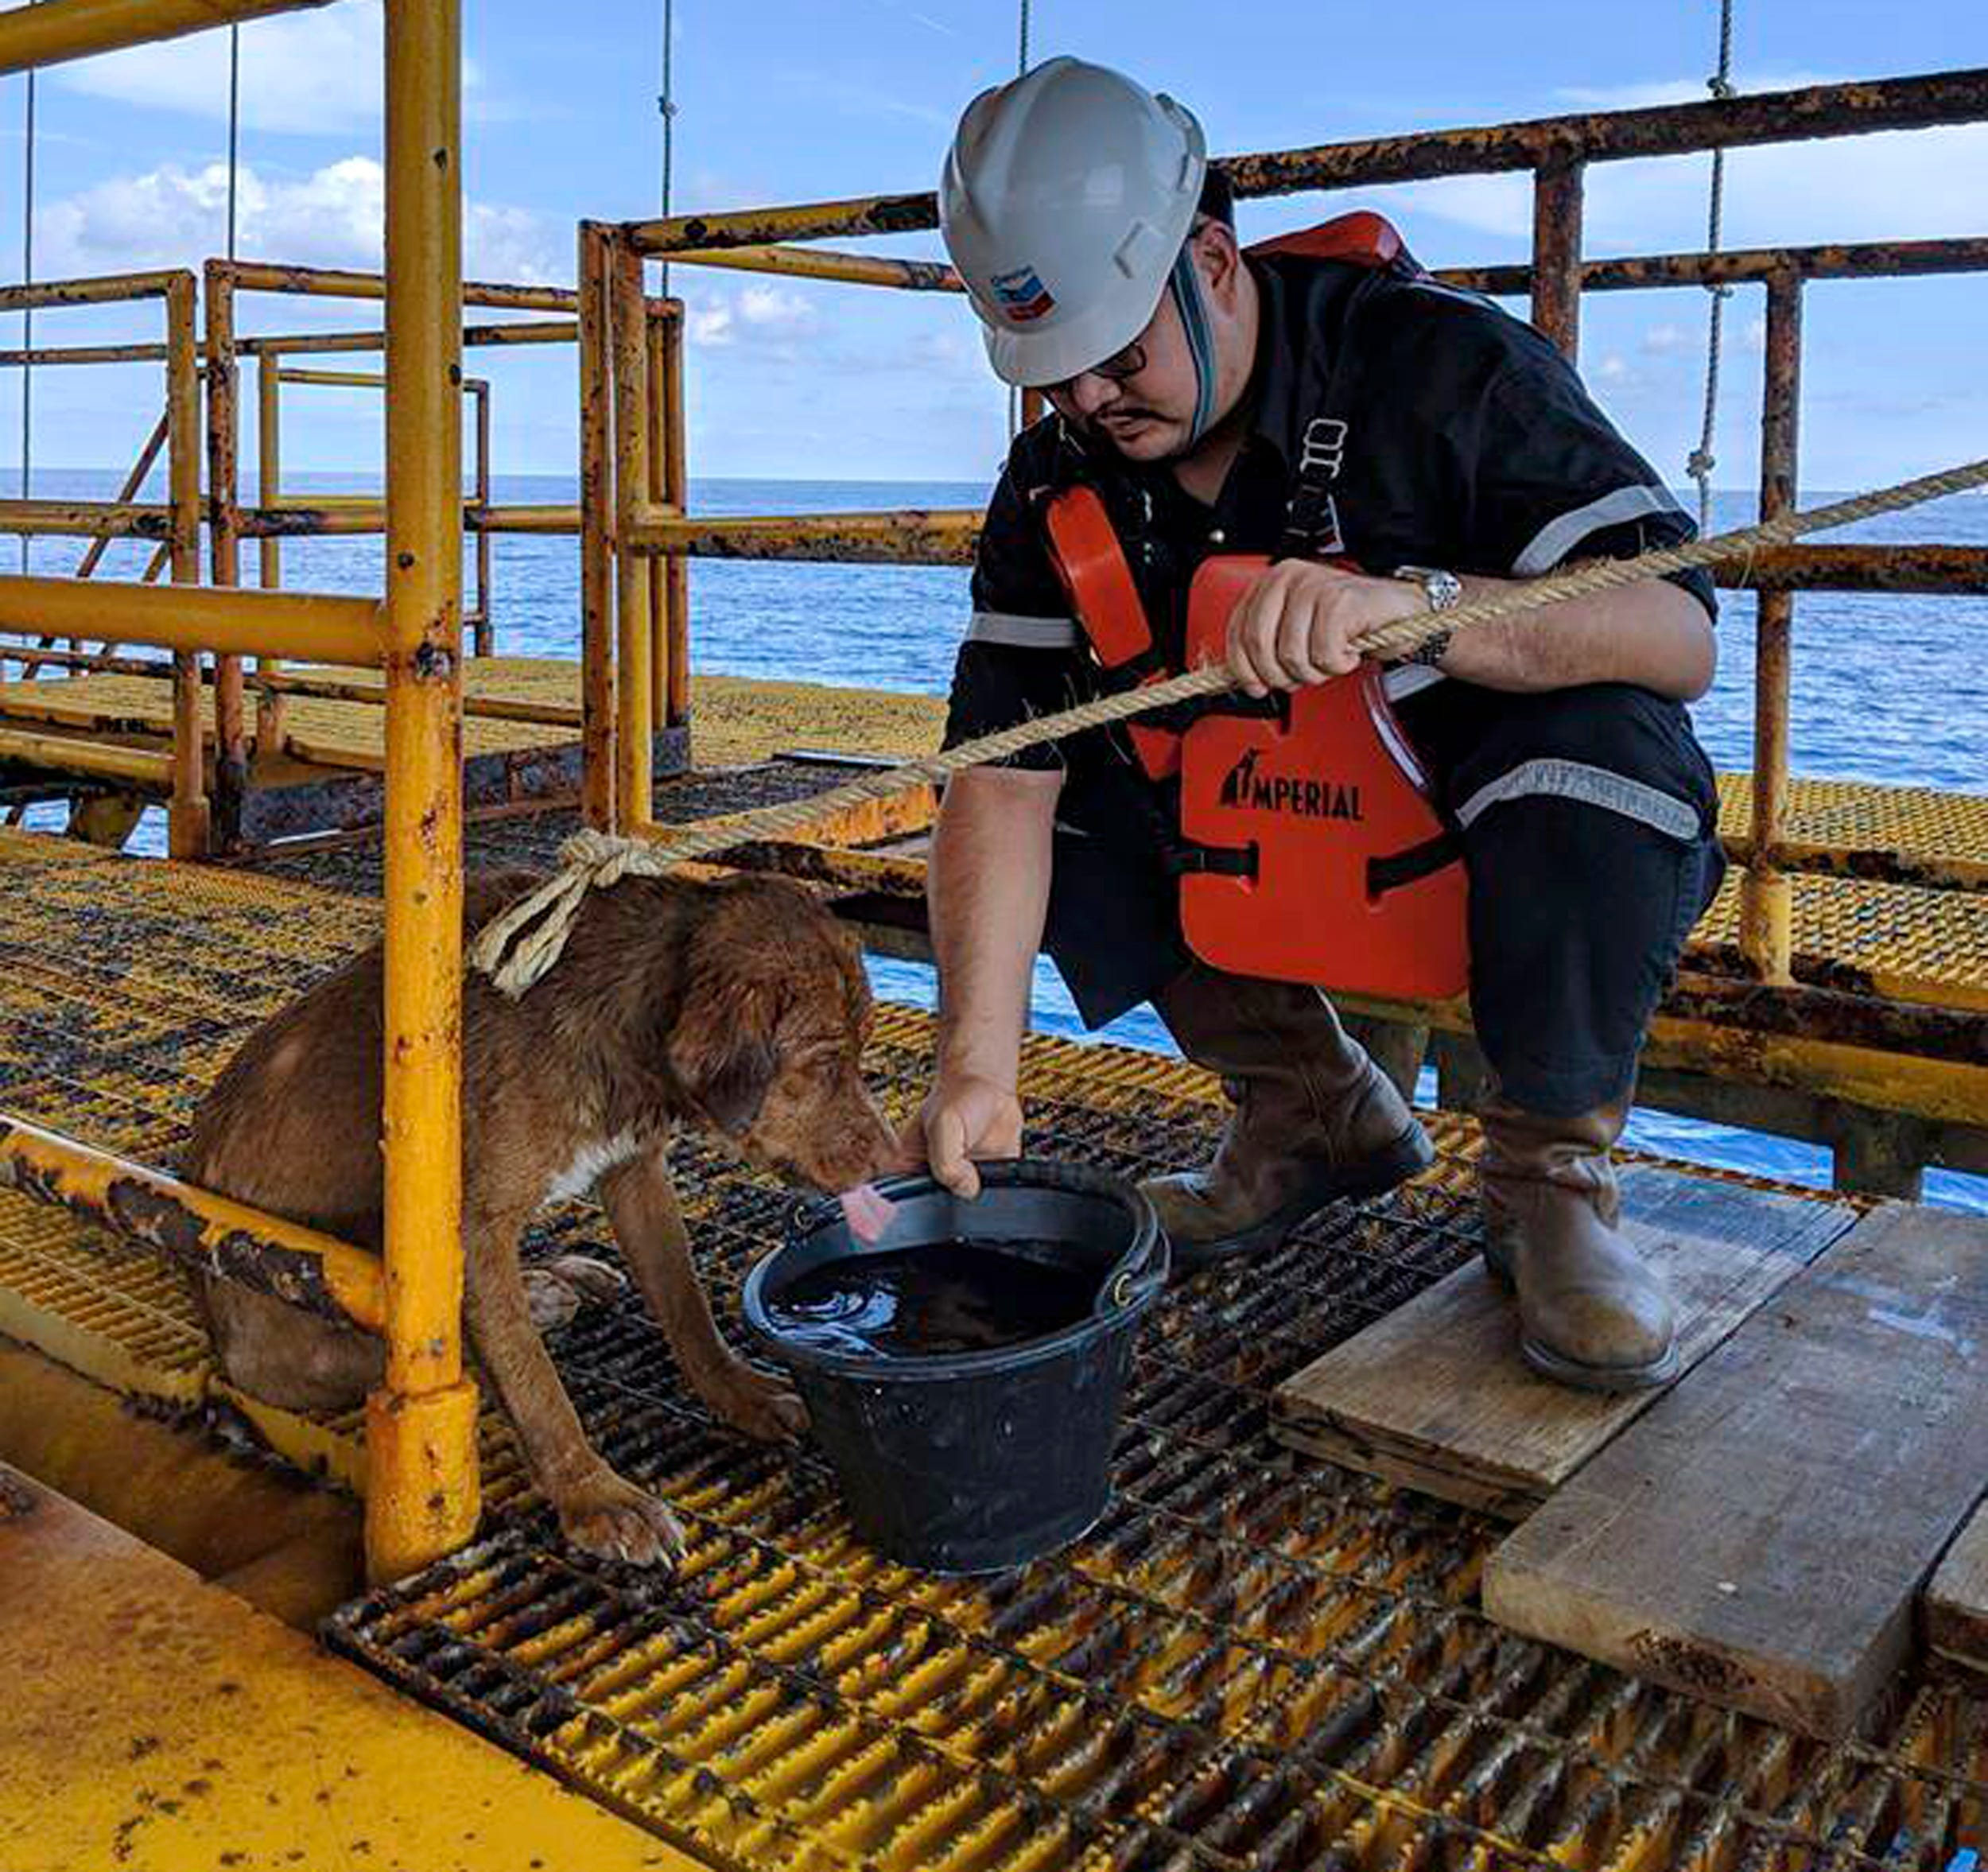 """] A dog found swimming more than 135 miles from the shore of an oil rig crew in the Gulf of Thailand has been safely restored to the ground. """"A dog found swimming more than 135 miles from the shore of an oil tank crew in the Gulf of Thailand was"""" Width = """"540"""" data-mycapture-src = """""""" data-mycapture-sm-src ="""